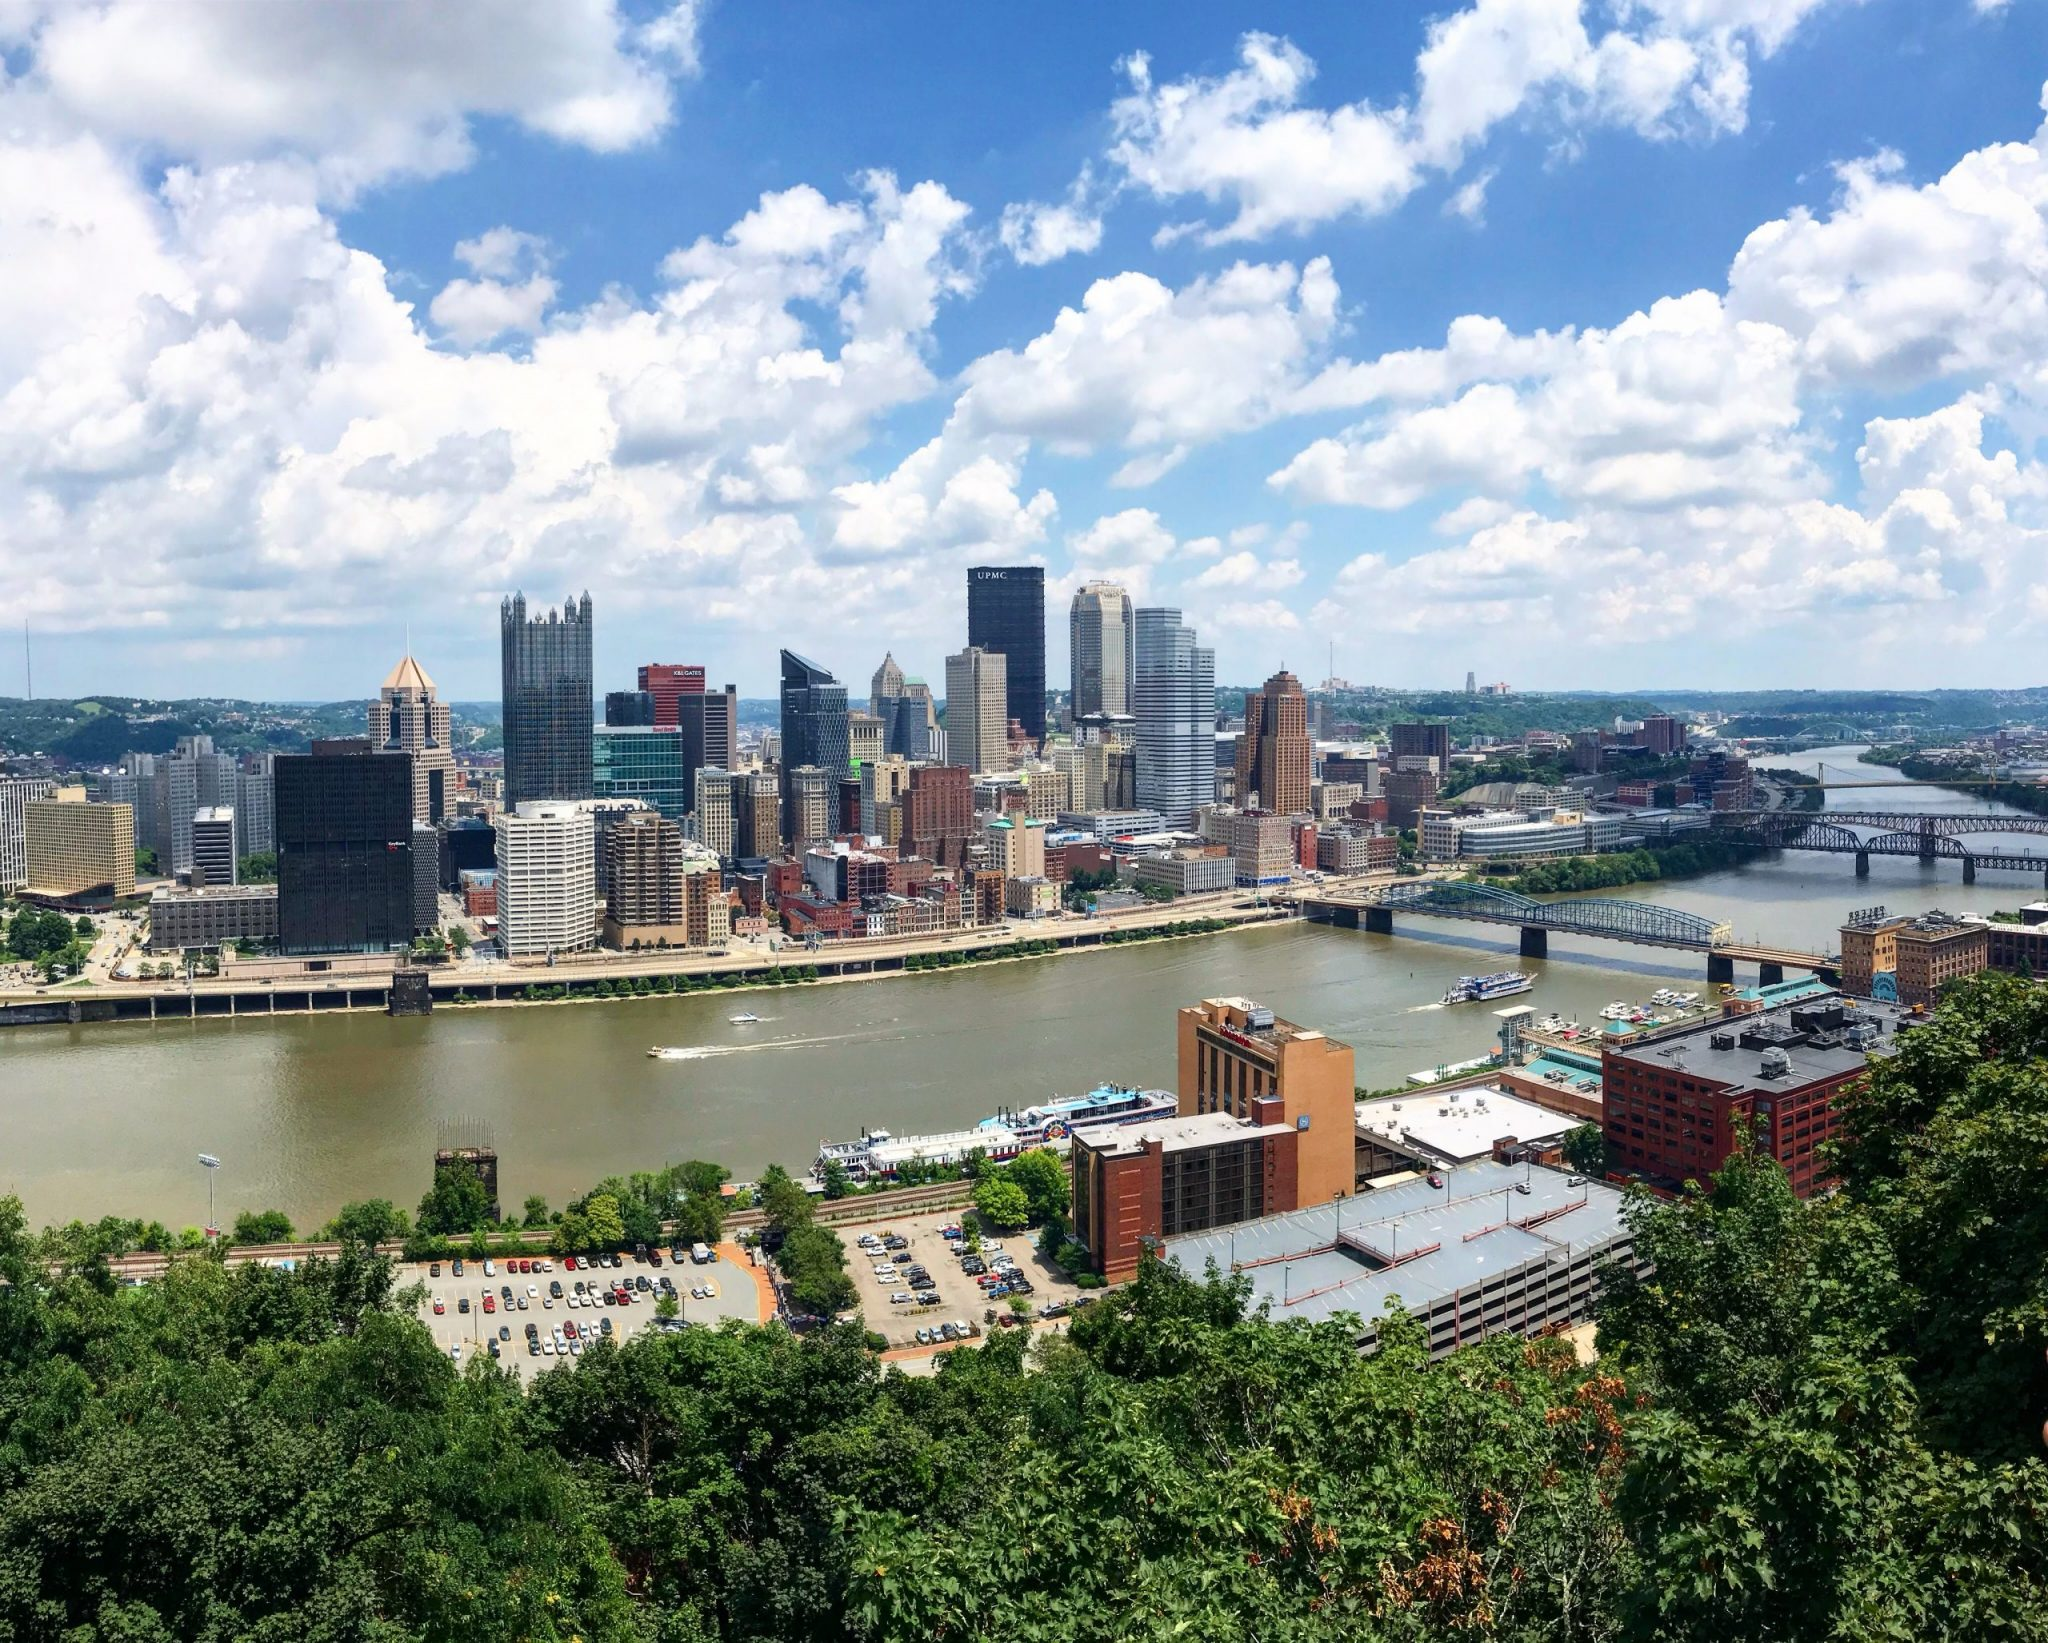 Make sure to catch a glimpse of the skyline when exploring things to do in Pittsburgh.